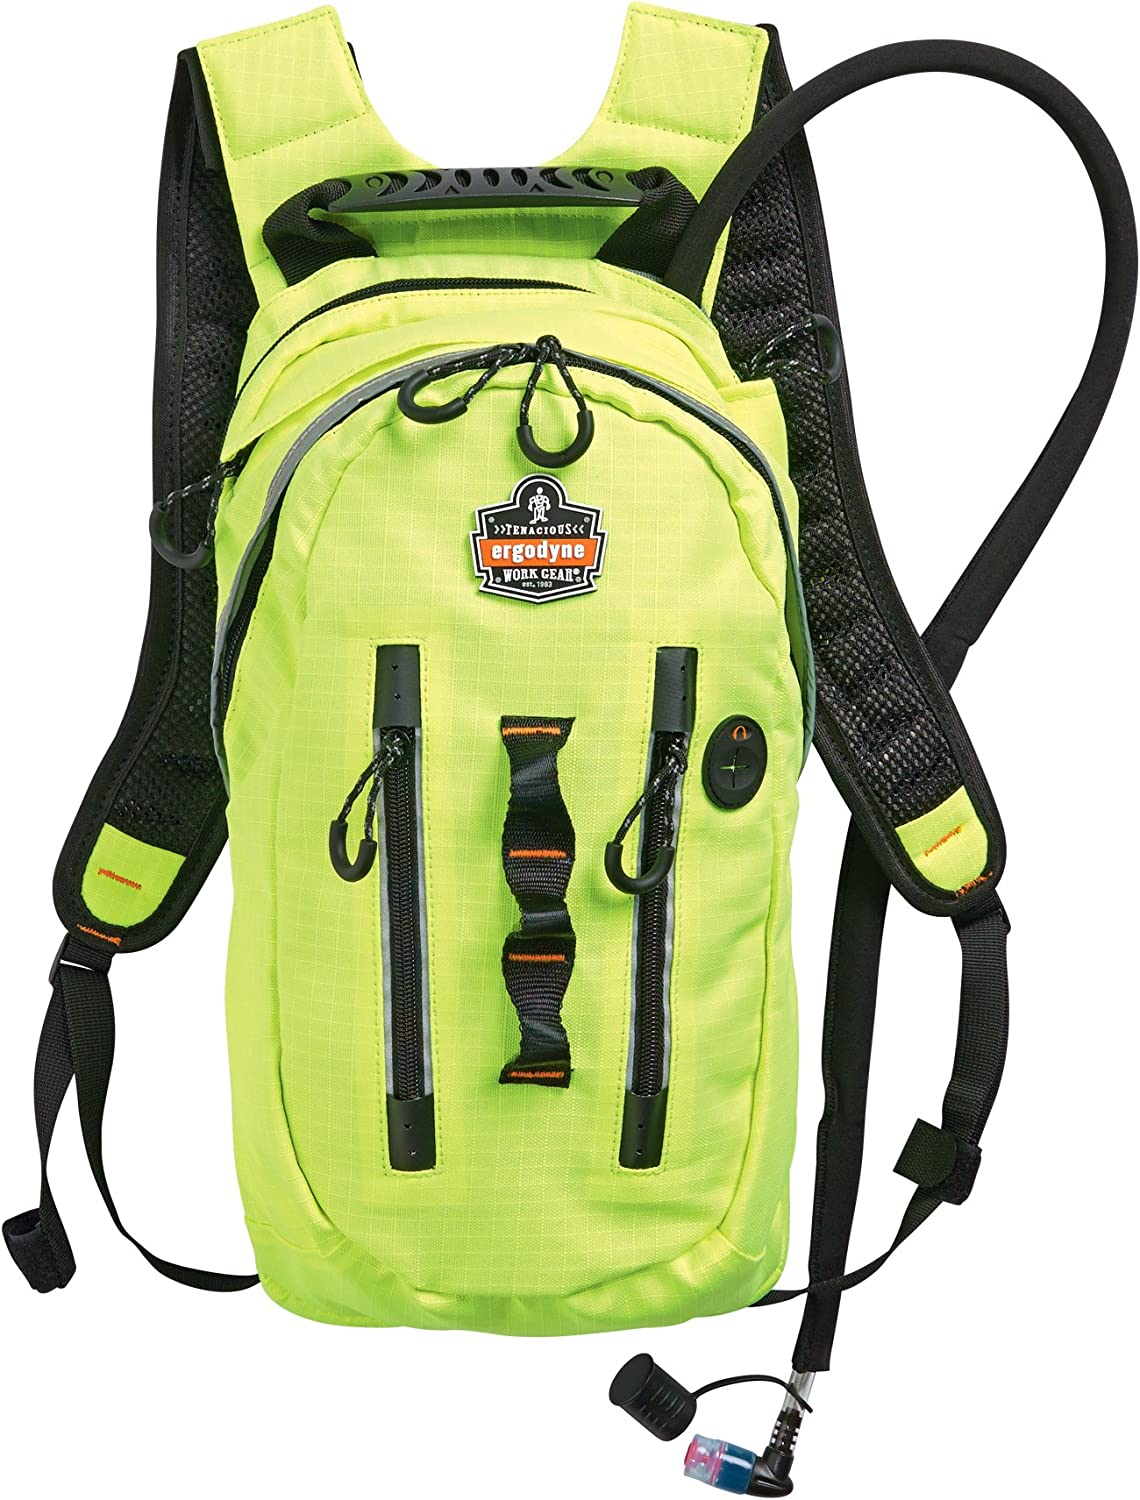 Ergodyne Chill-Its 5157 Premium Cargo High Visibility Hydration Pack, Lime